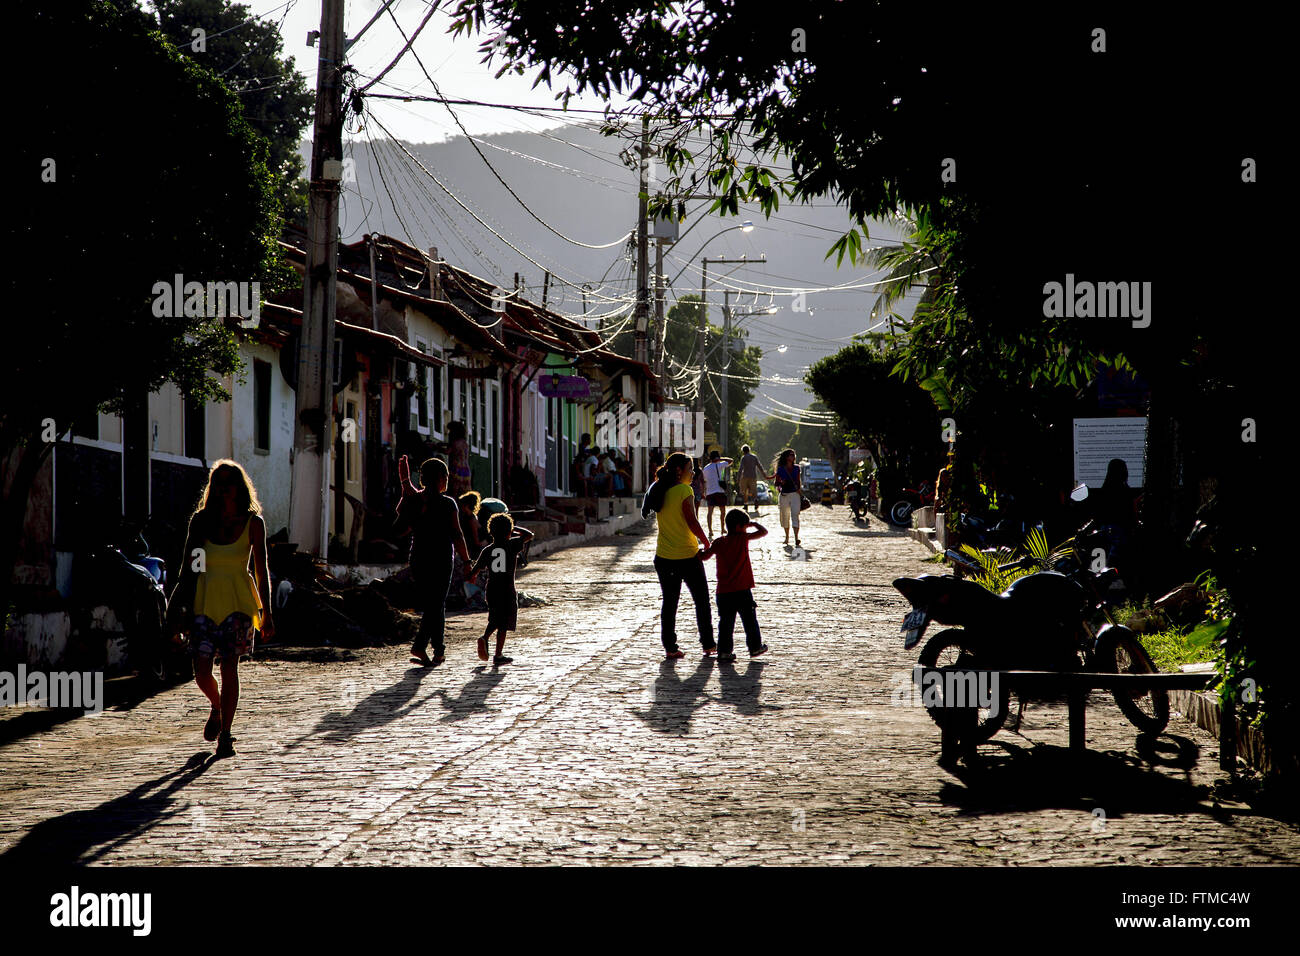 Caete-Acu village in the valley of Capao - Stock Image